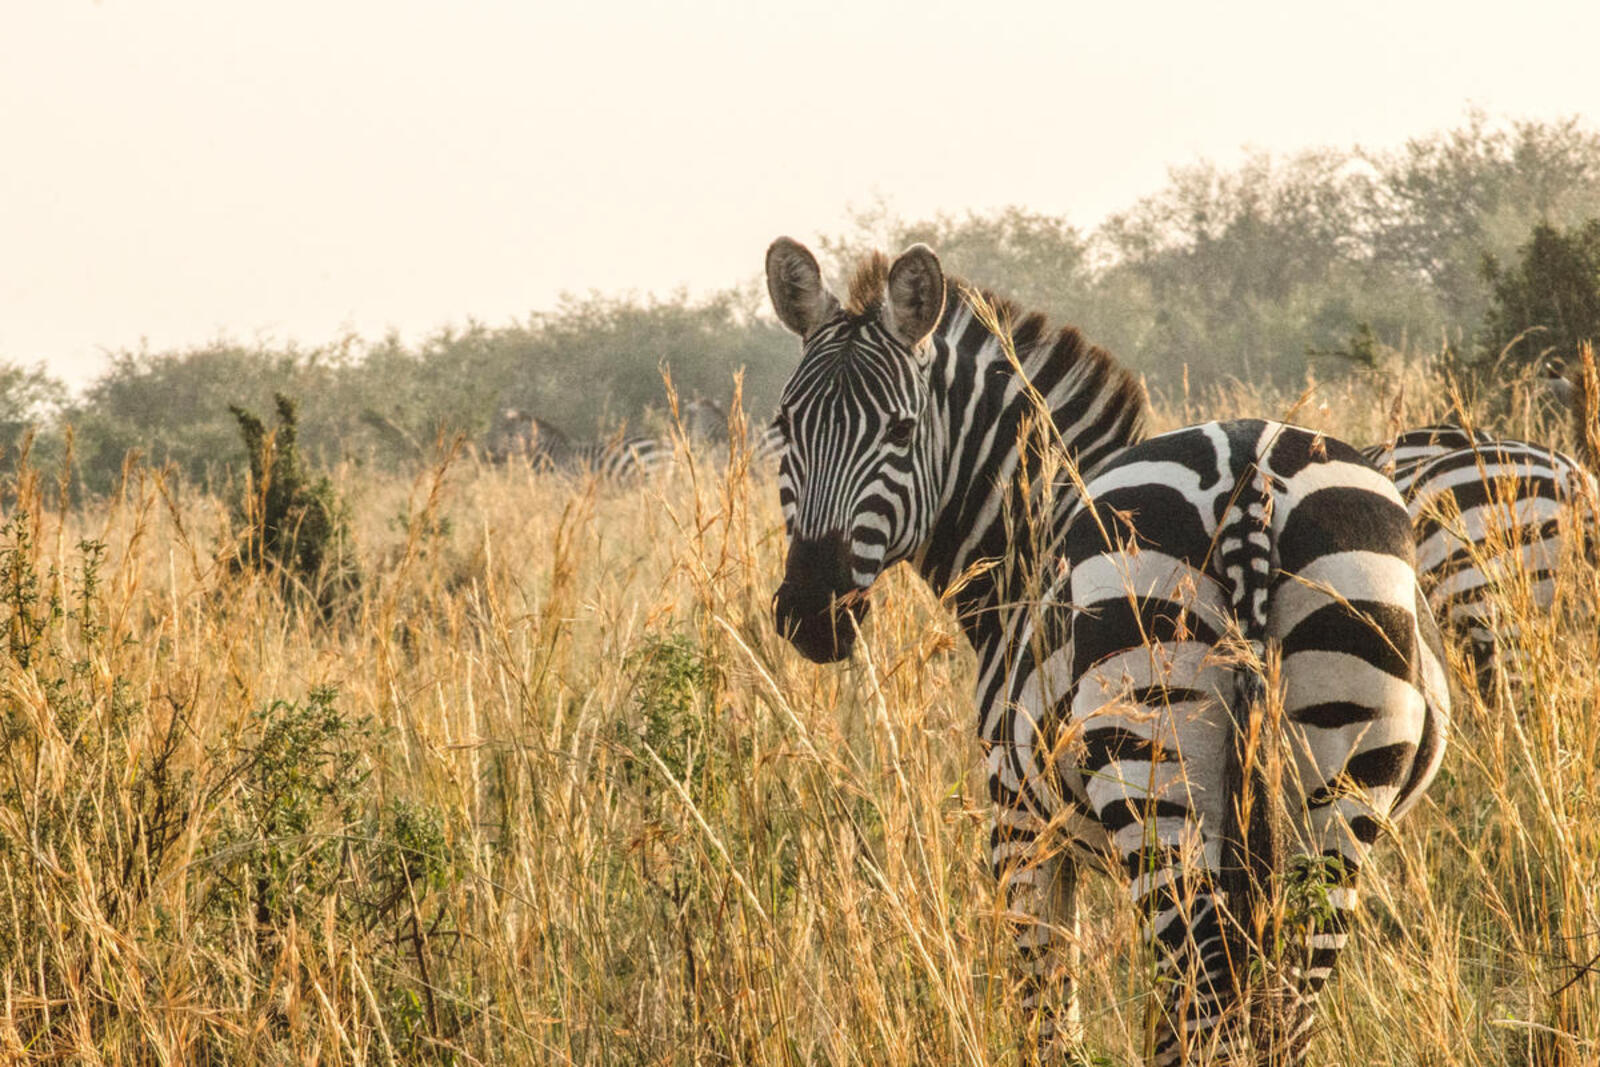 A zebra standing in tall grass turns its head around to look at the camera as teh sun sets